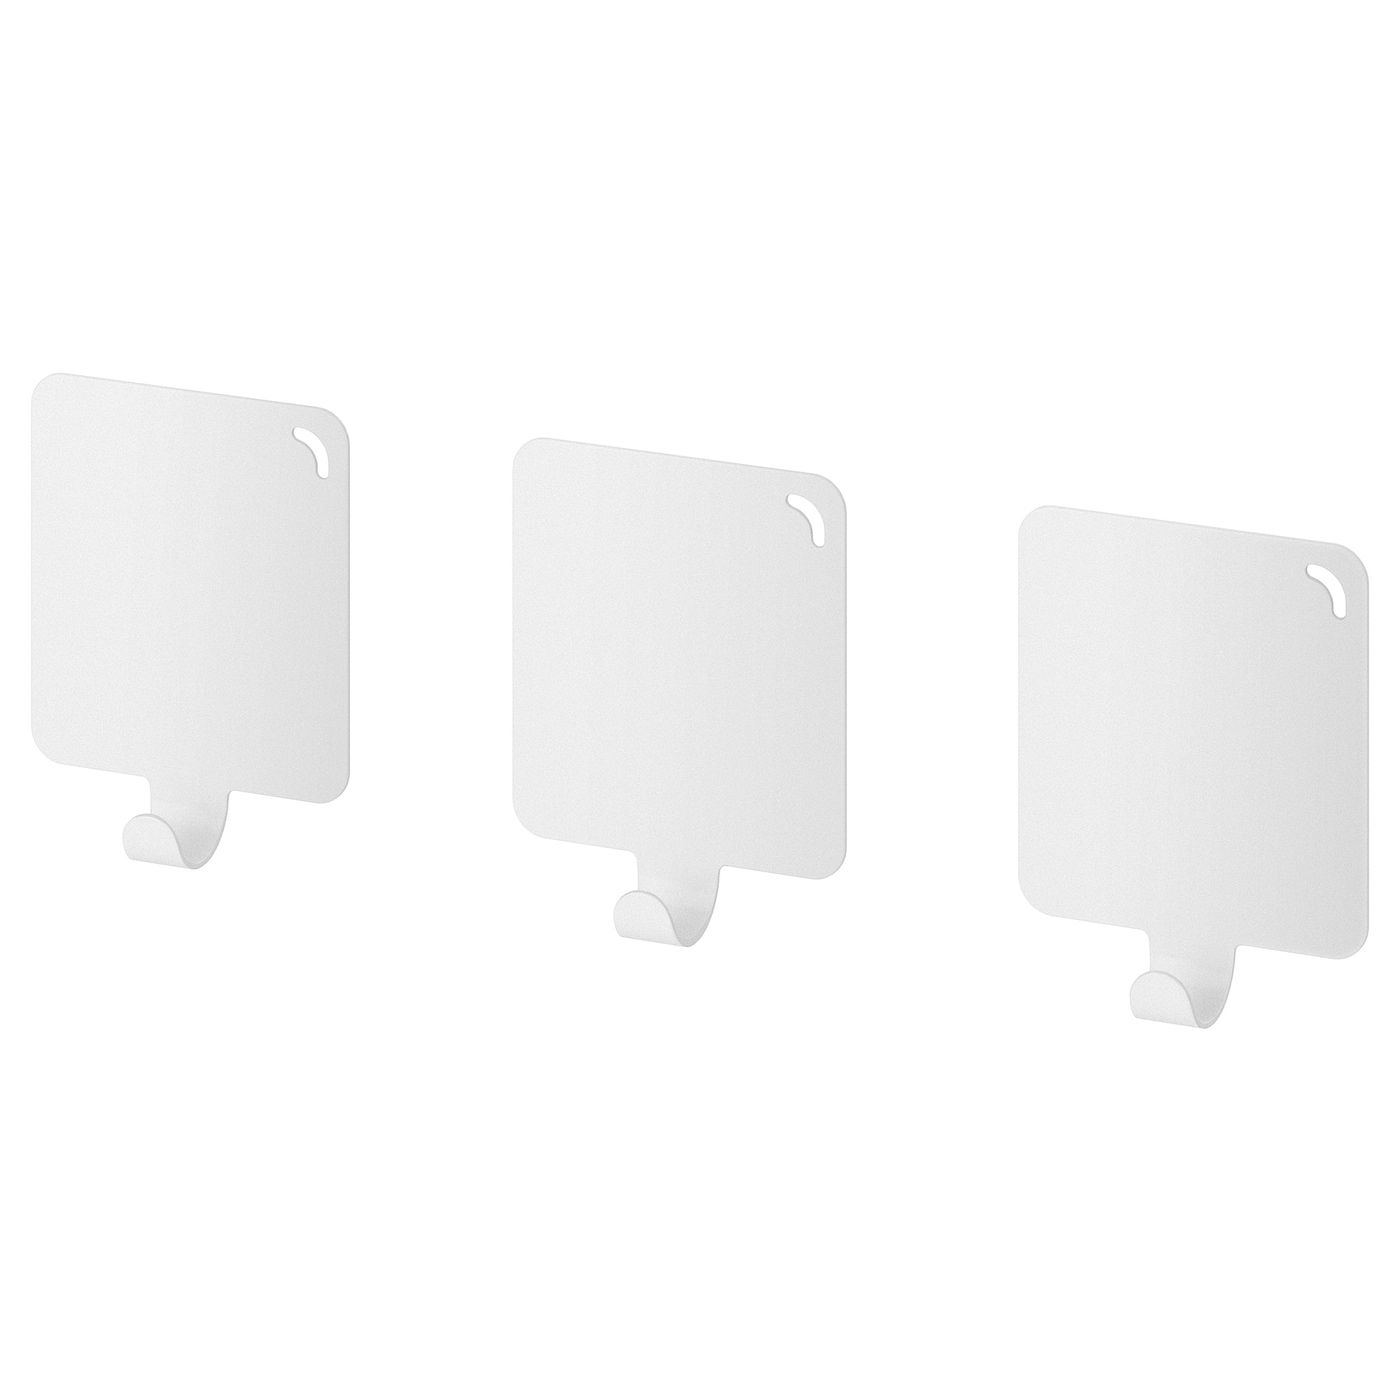 IKEA PLUTT hook, self-adhesive Easy to attach to the wall thanks to the self-adhesive tape.